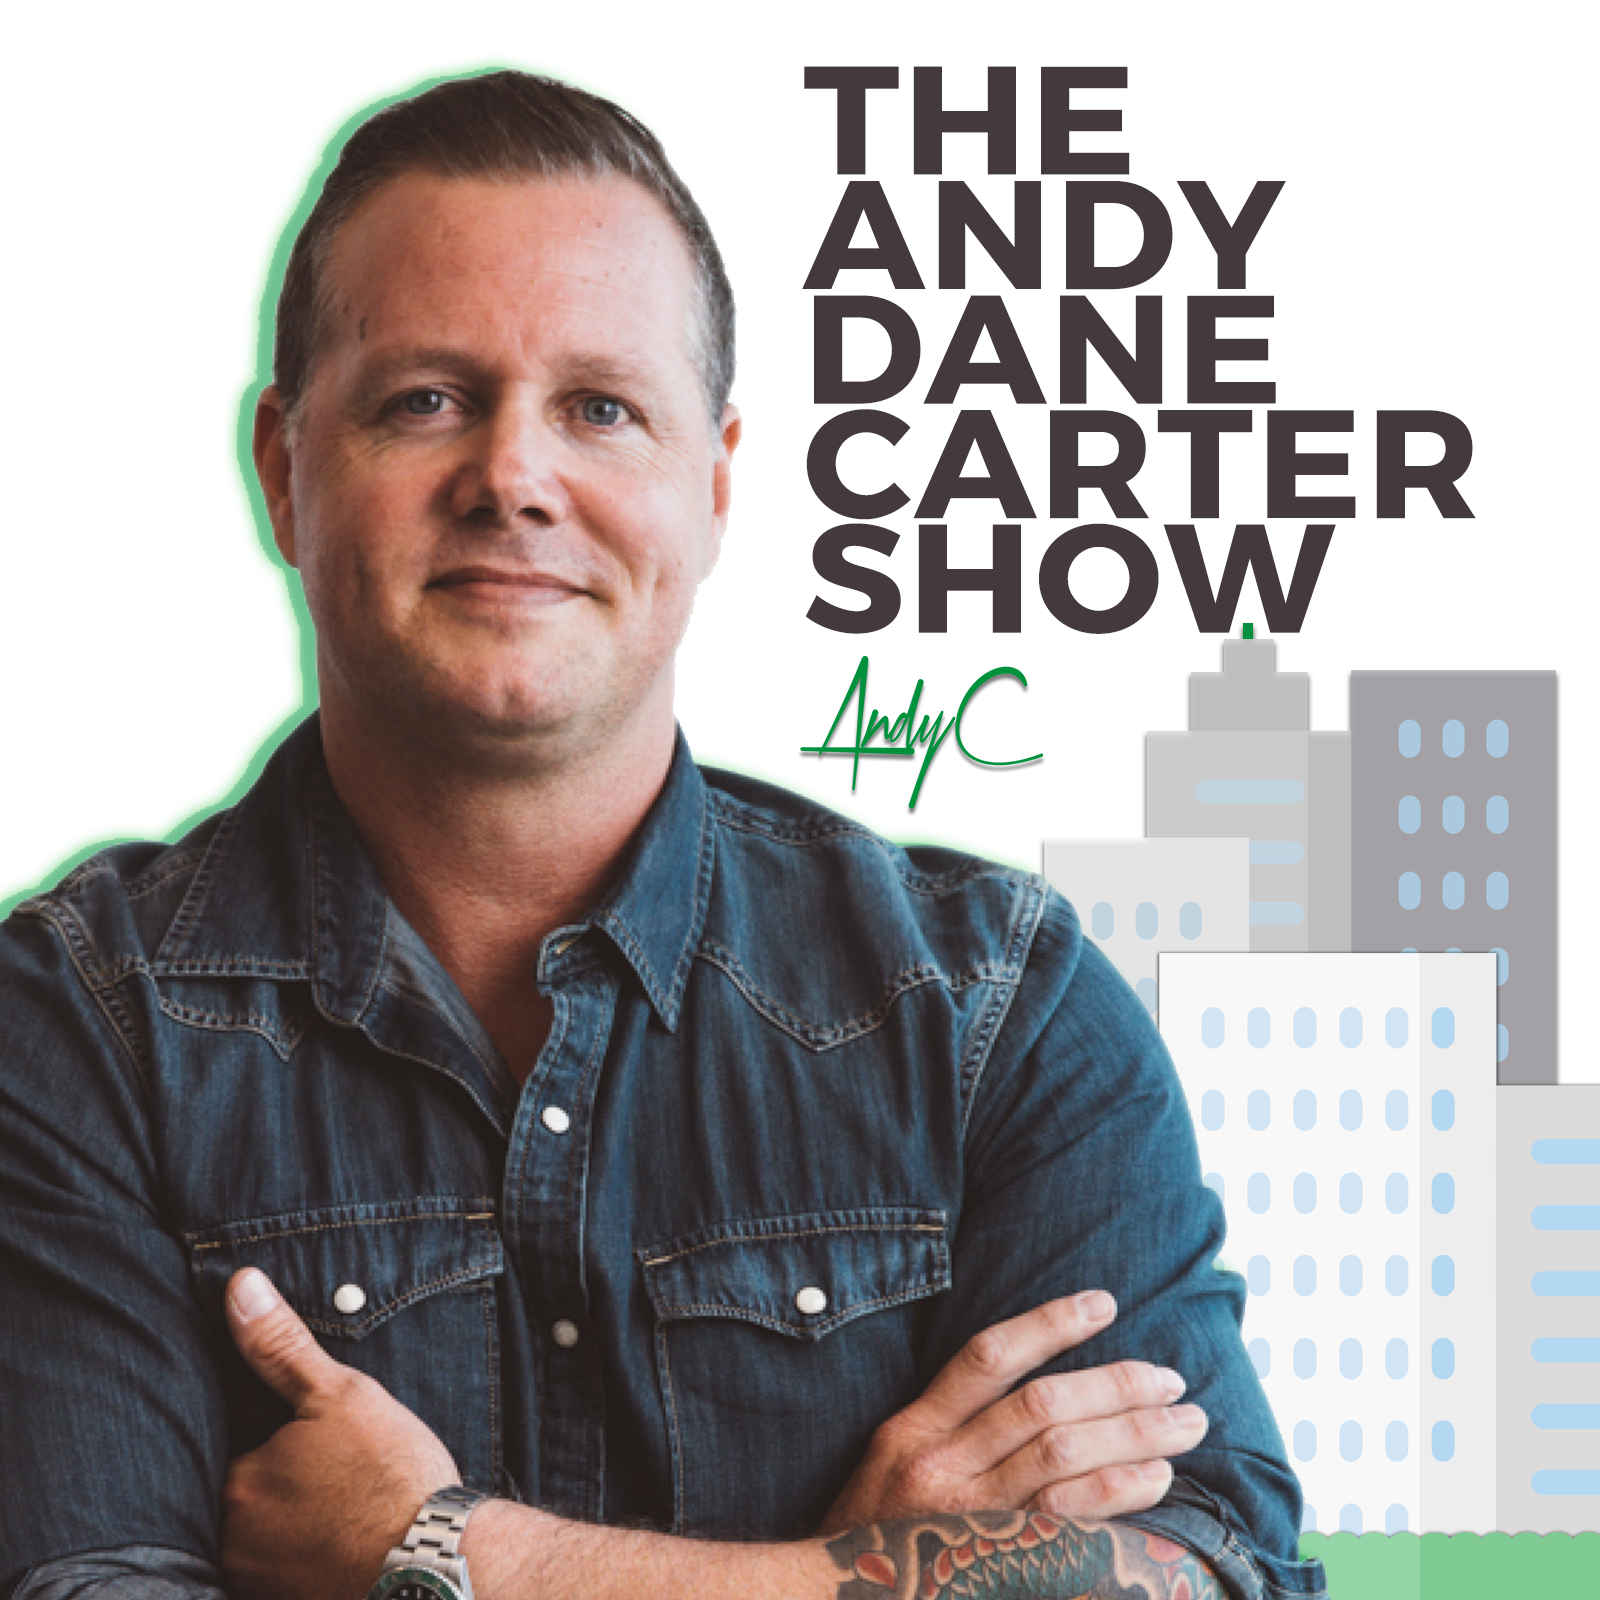 The Andy Dane Carter Show